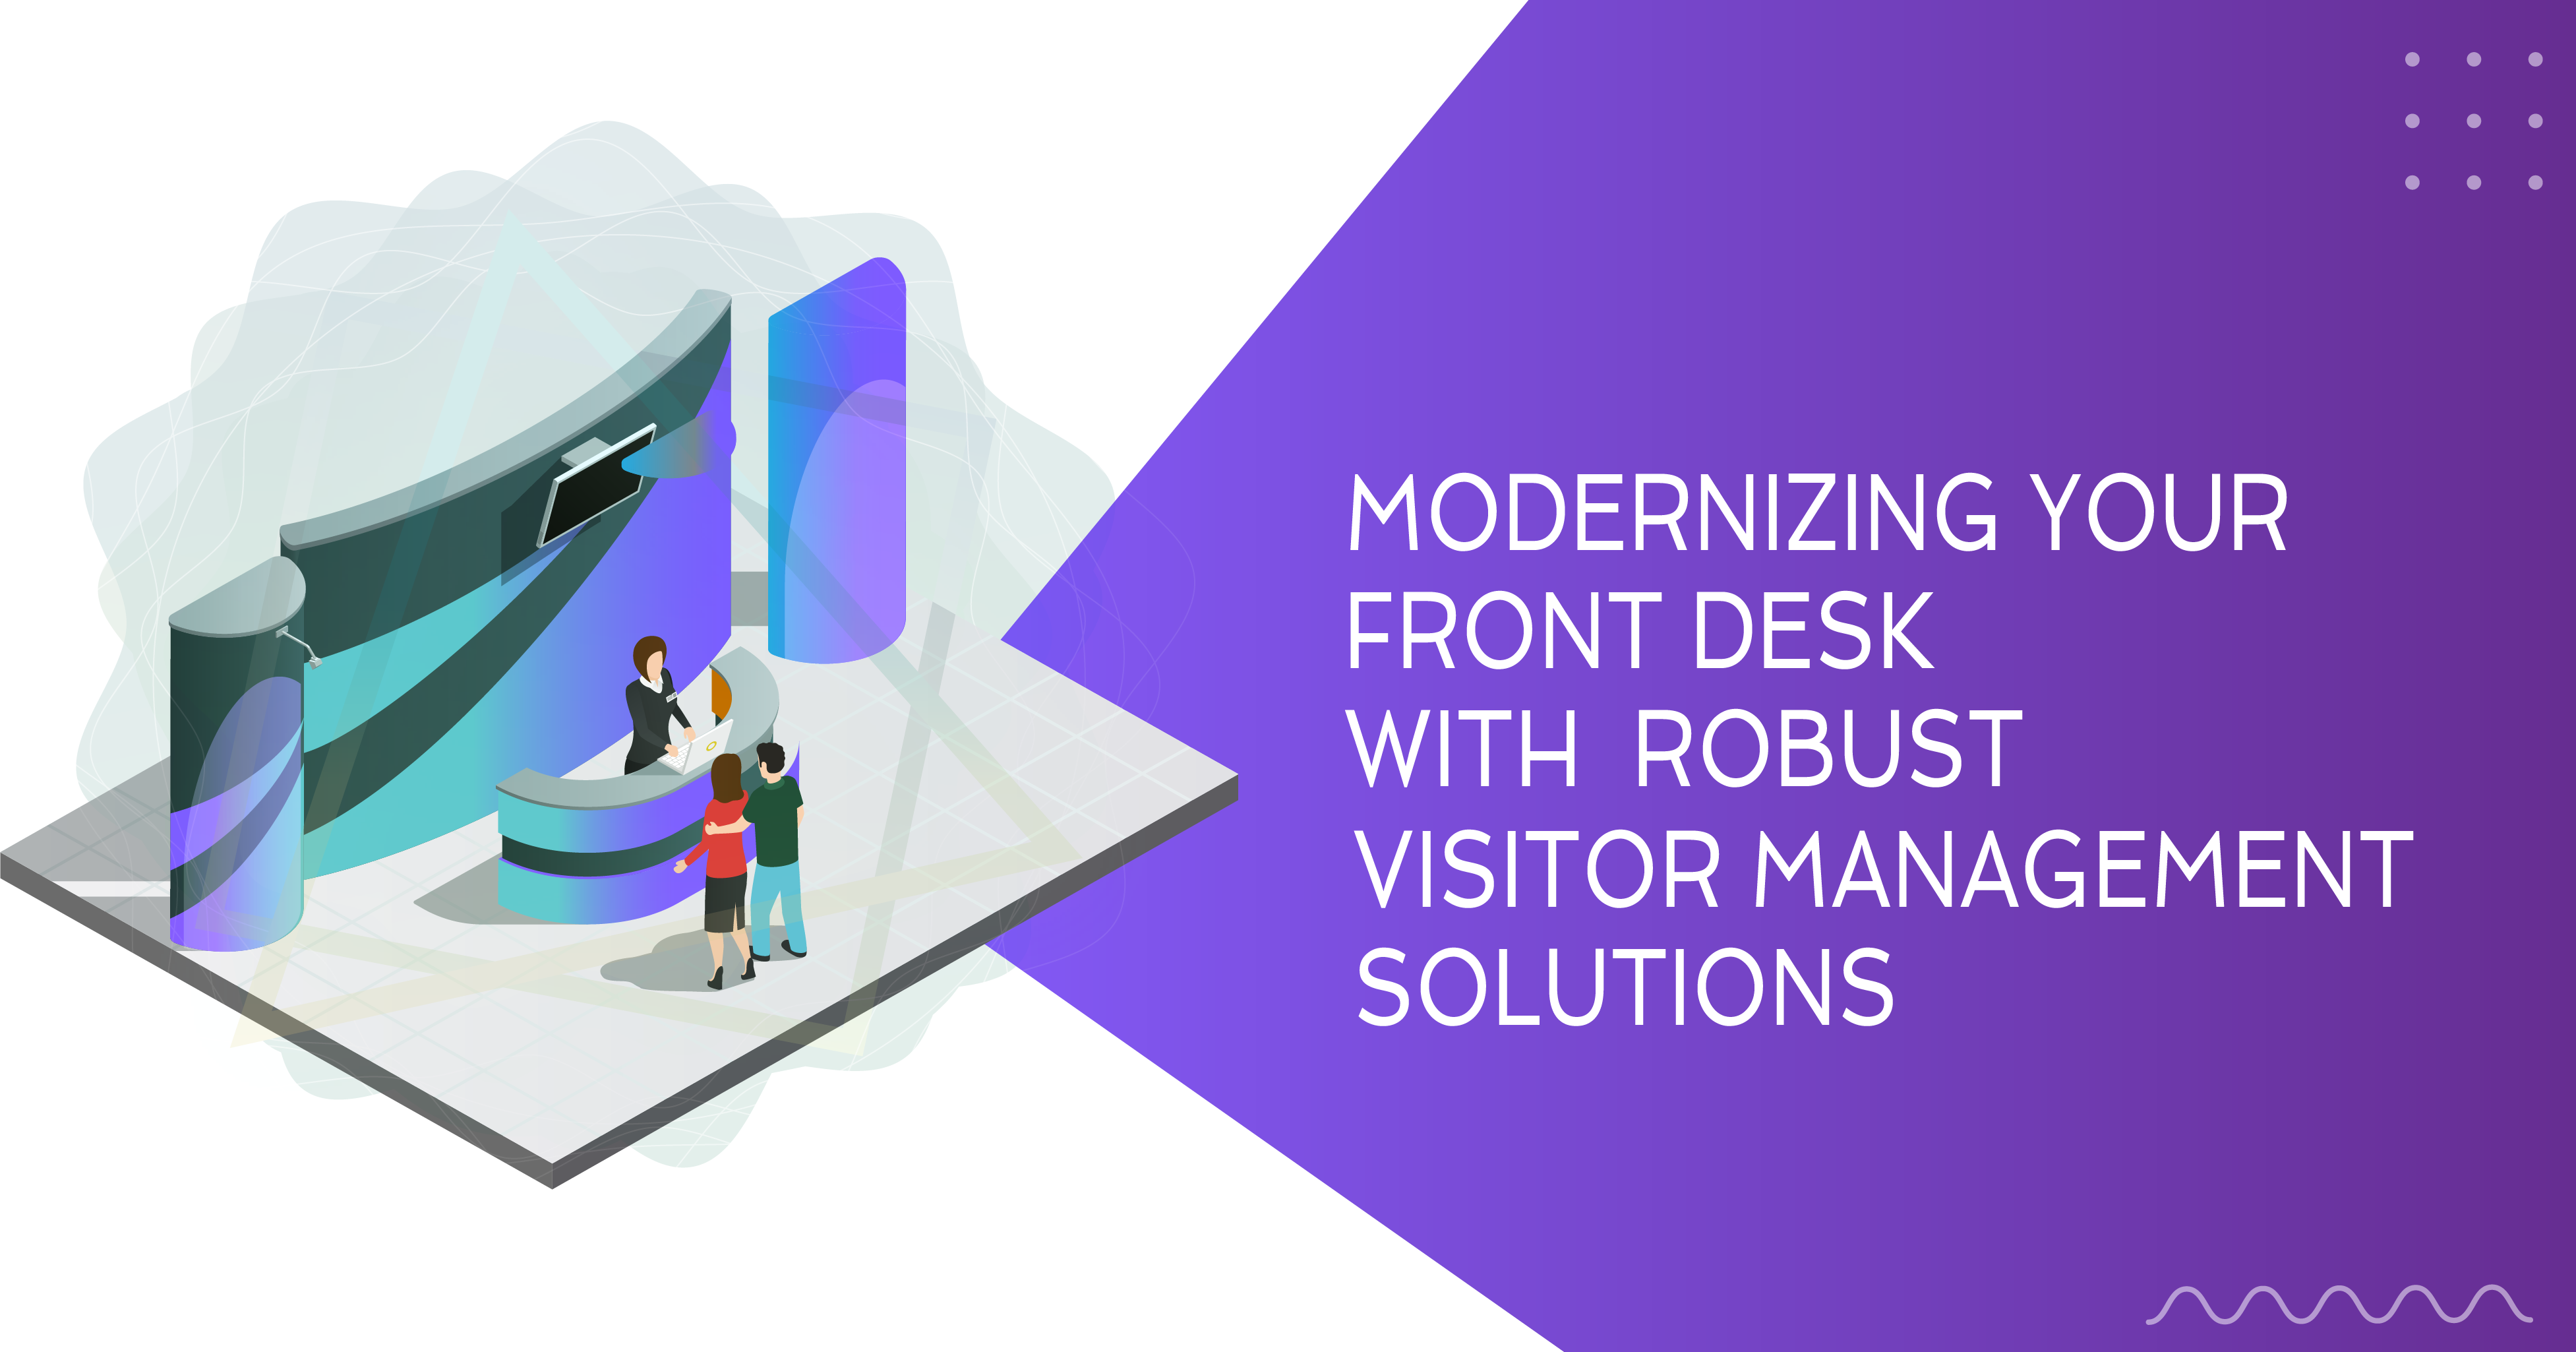 Modernizing Your Front Desk With Robust Visitor Management Solutions